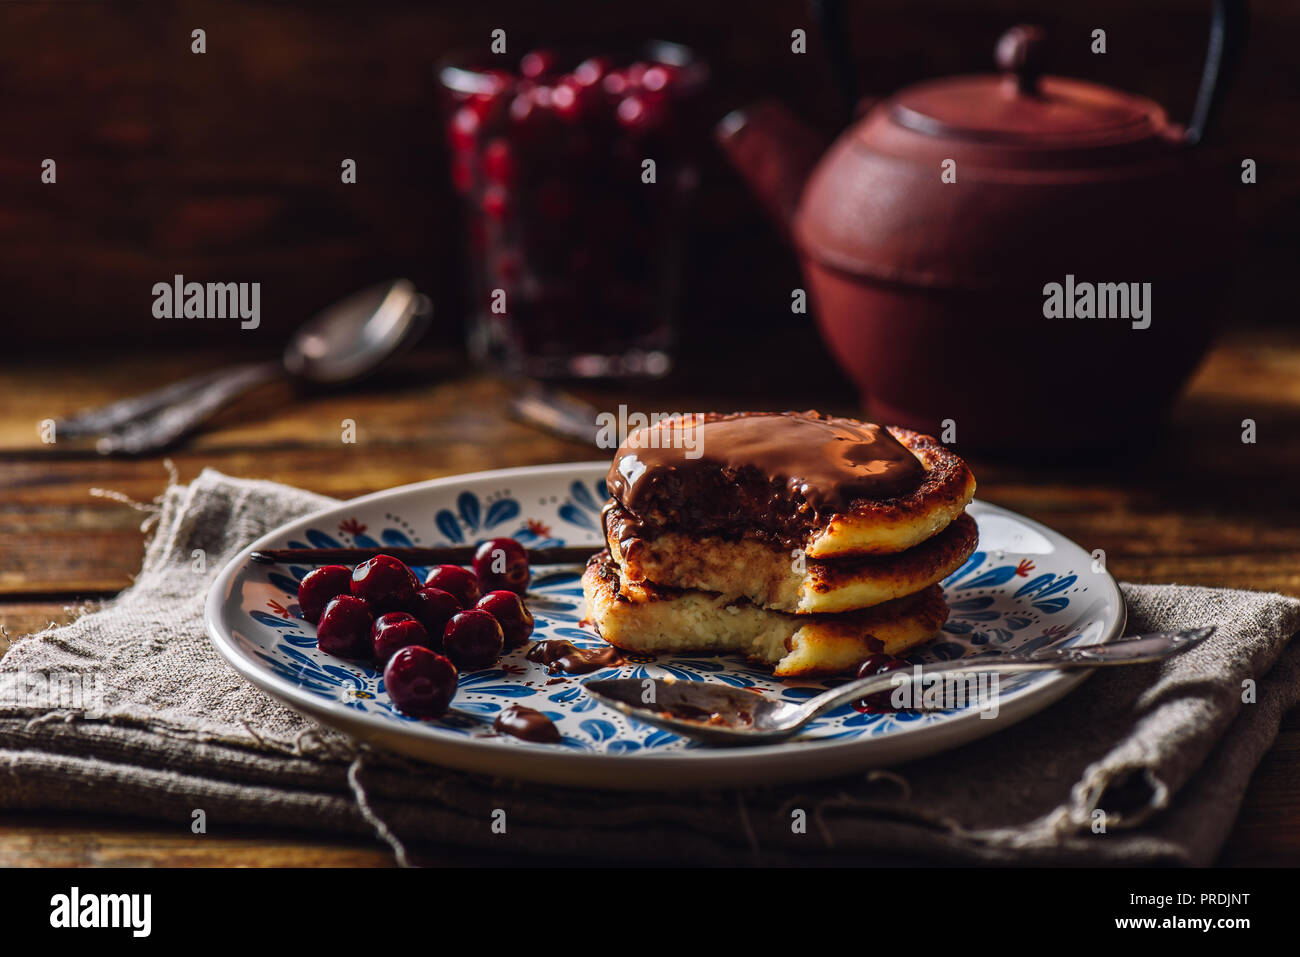 Quark Pancakes with Chocolate Topping, Frozen Cherry and Vanilla Pod. Tea Pot with Spoons and Glass of Berries on Background. - Stock Image